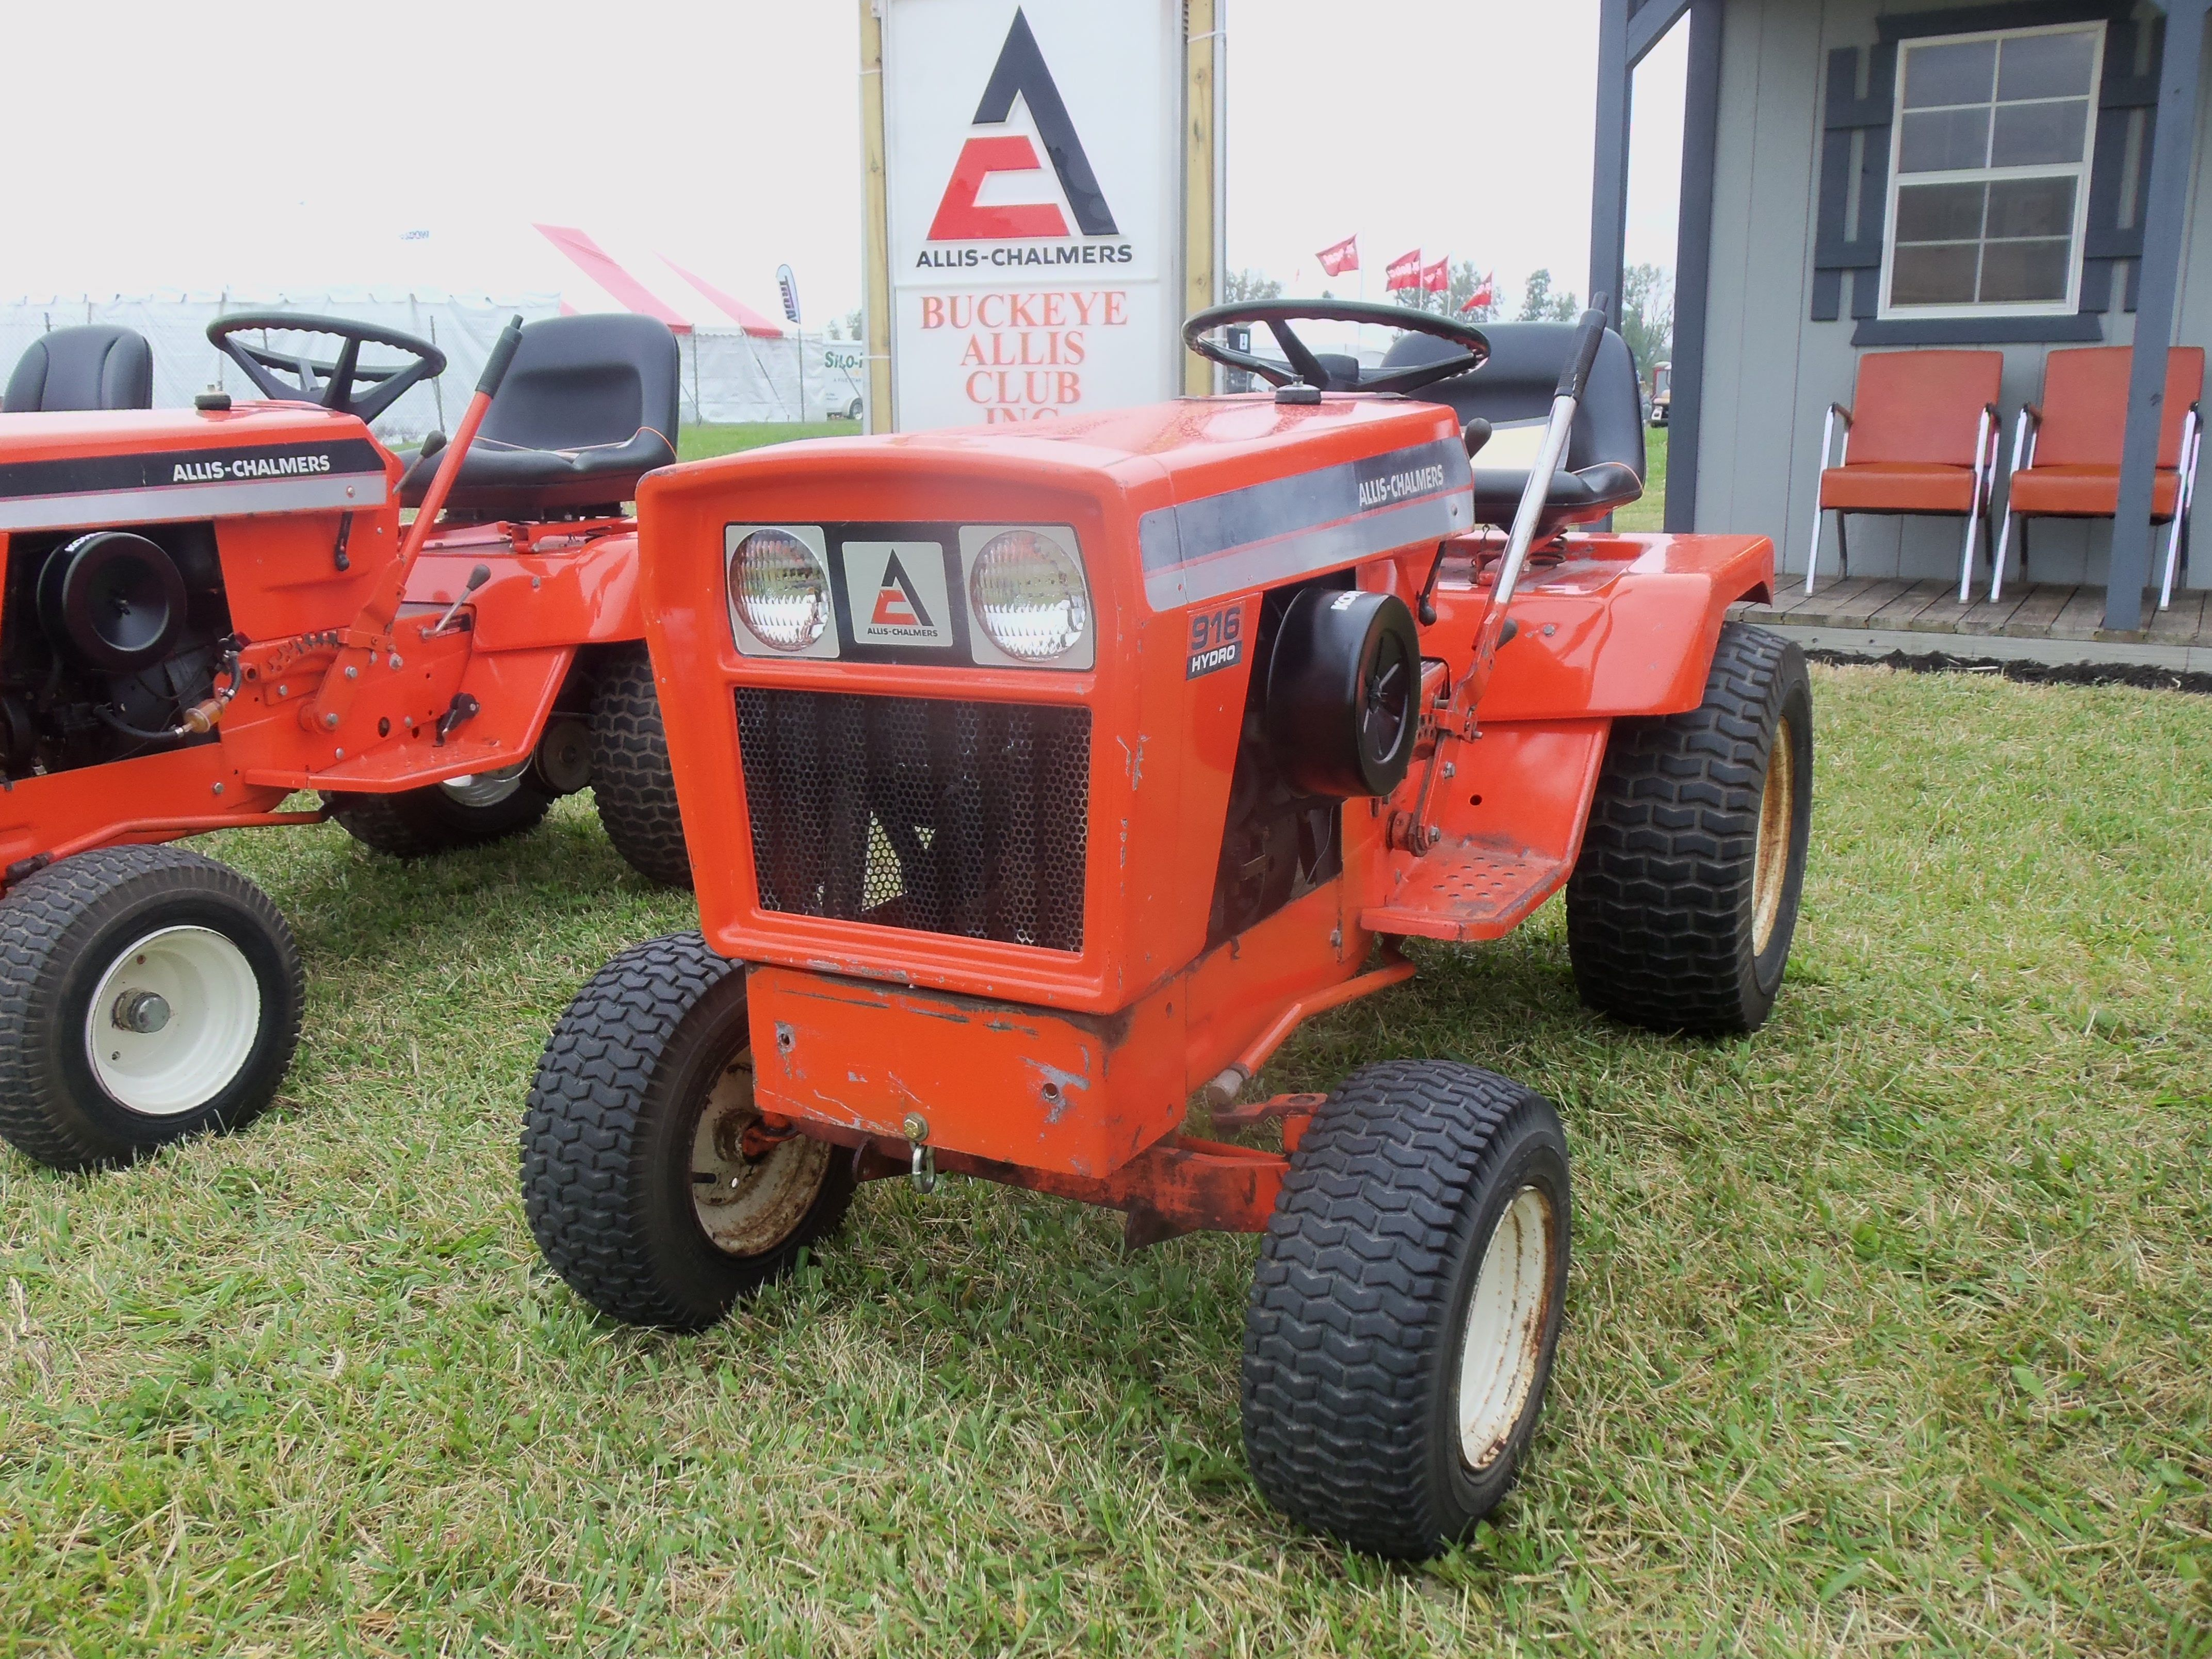 Allis Chalmers 917 Lawn Garden Tractor With Images Garden